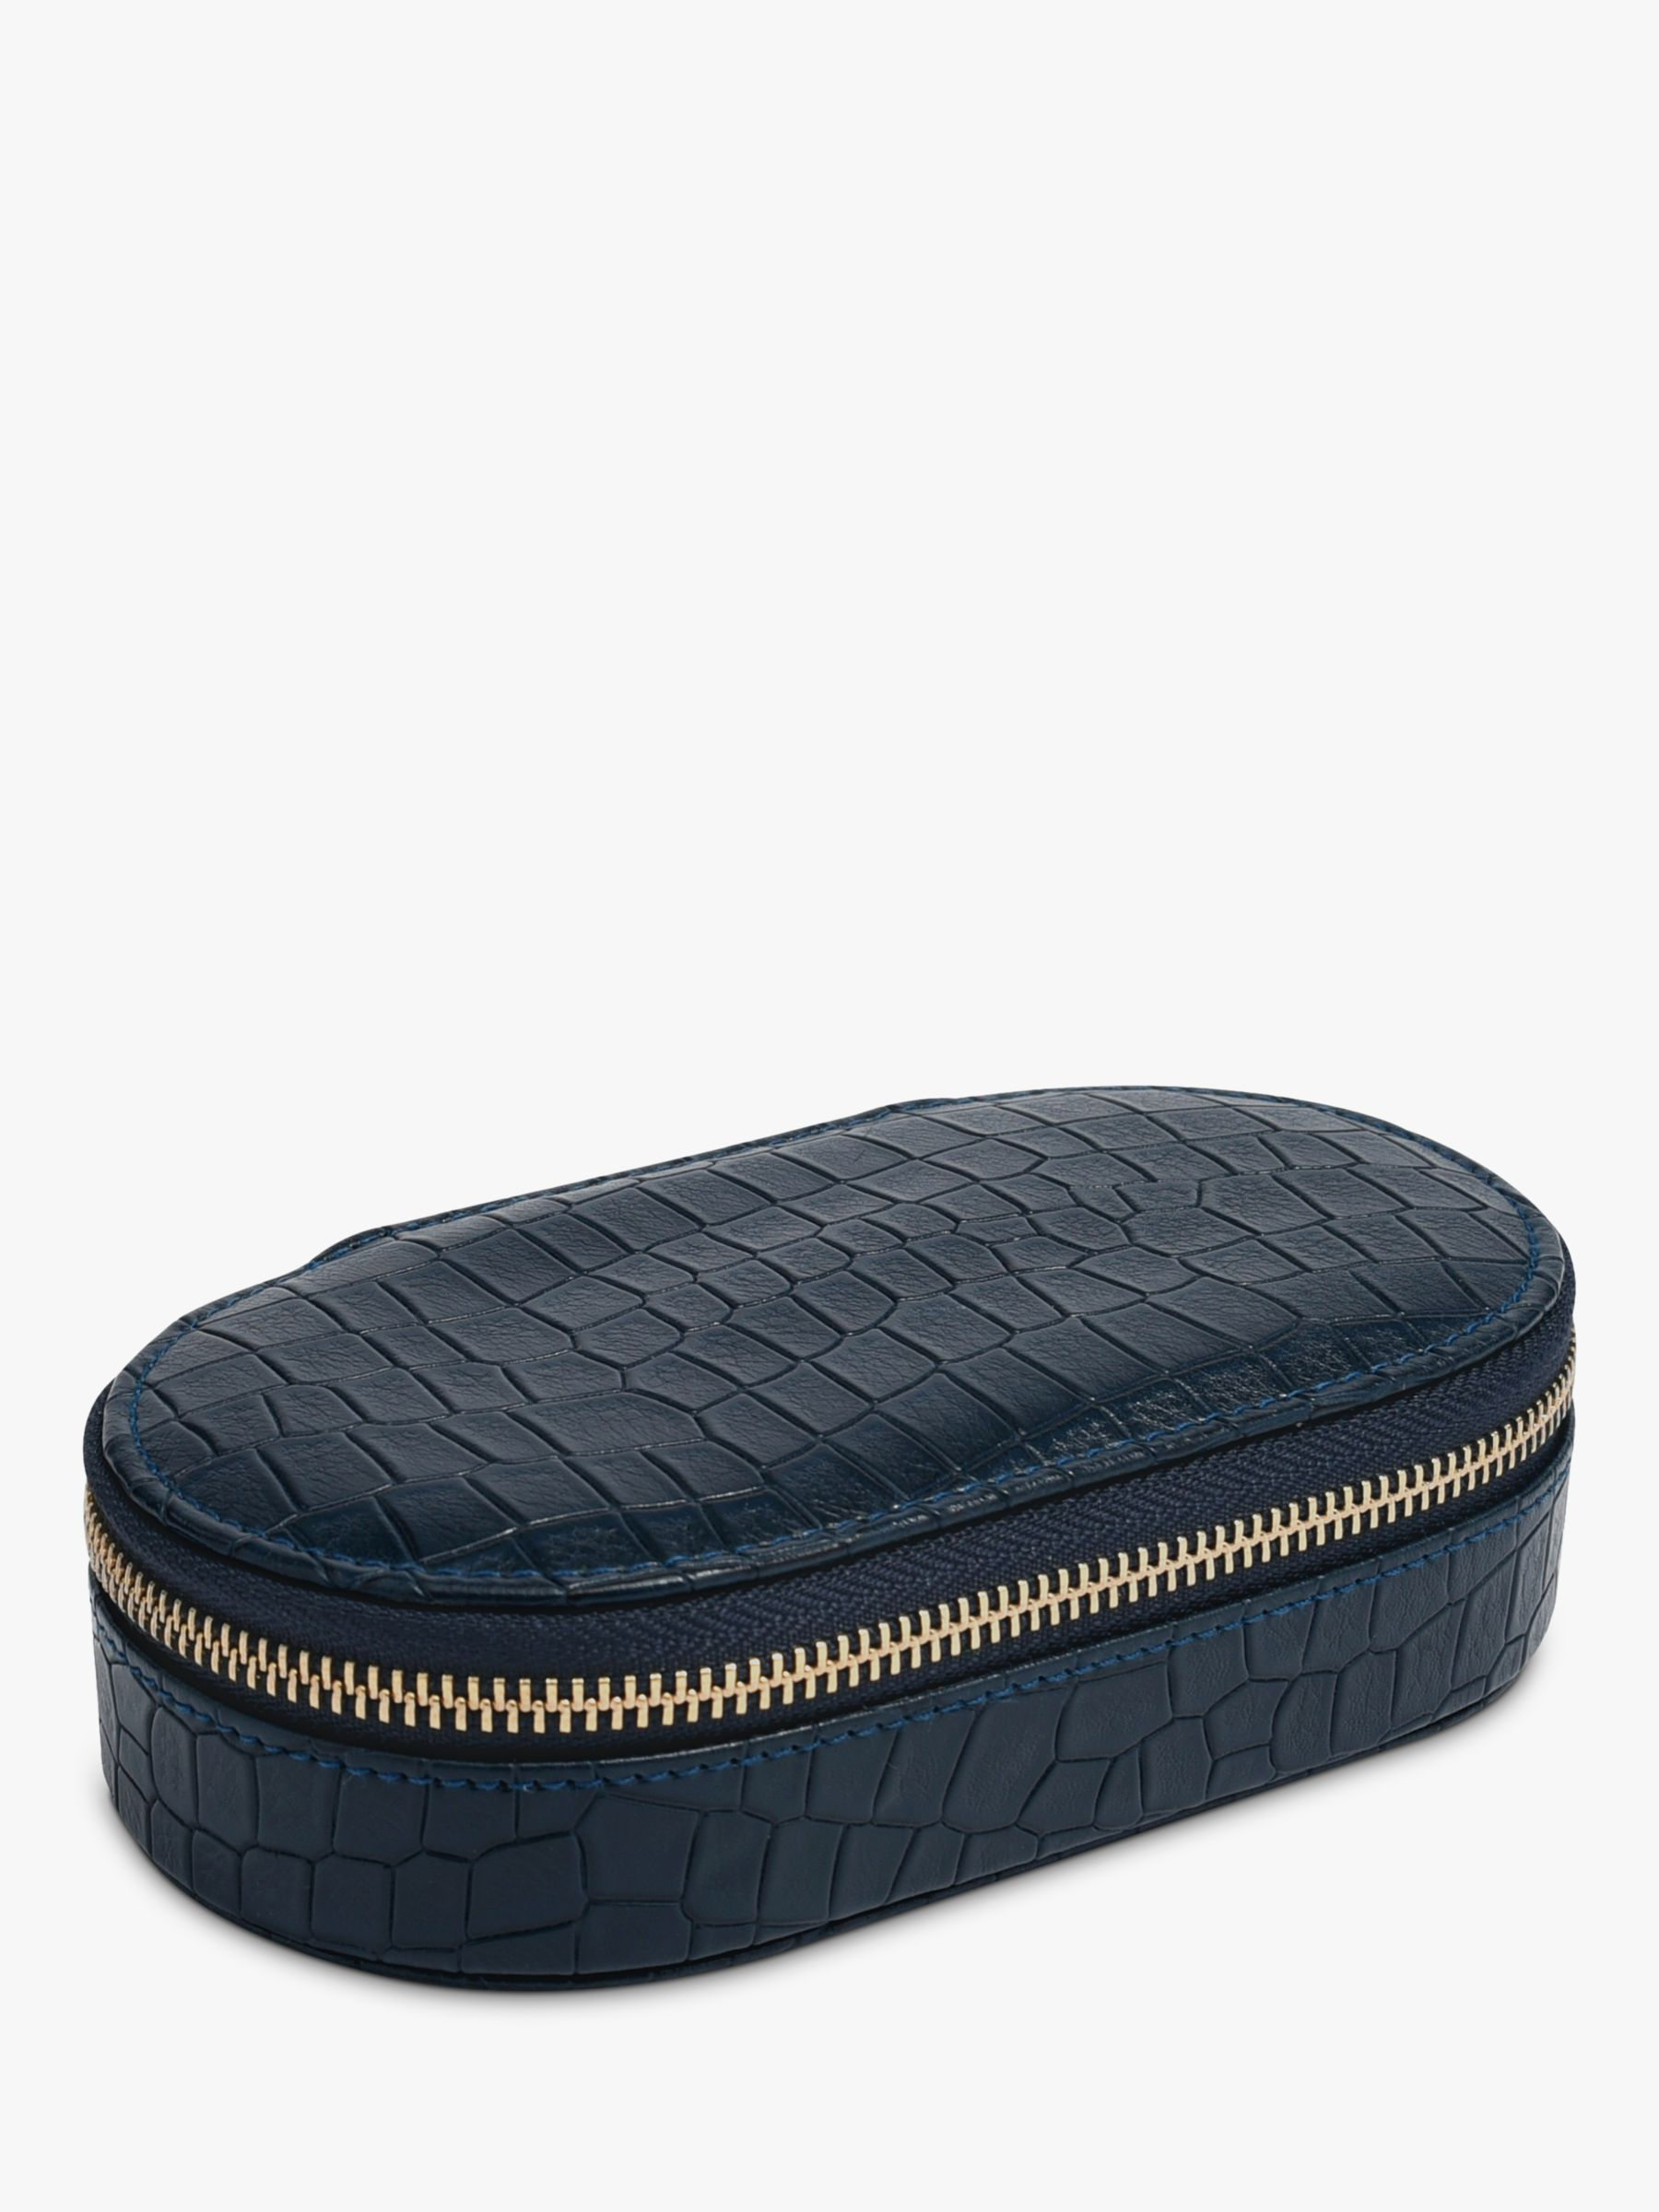 Stackers Stackers Mock Croc Oval Travel Jewellery Box, Navy